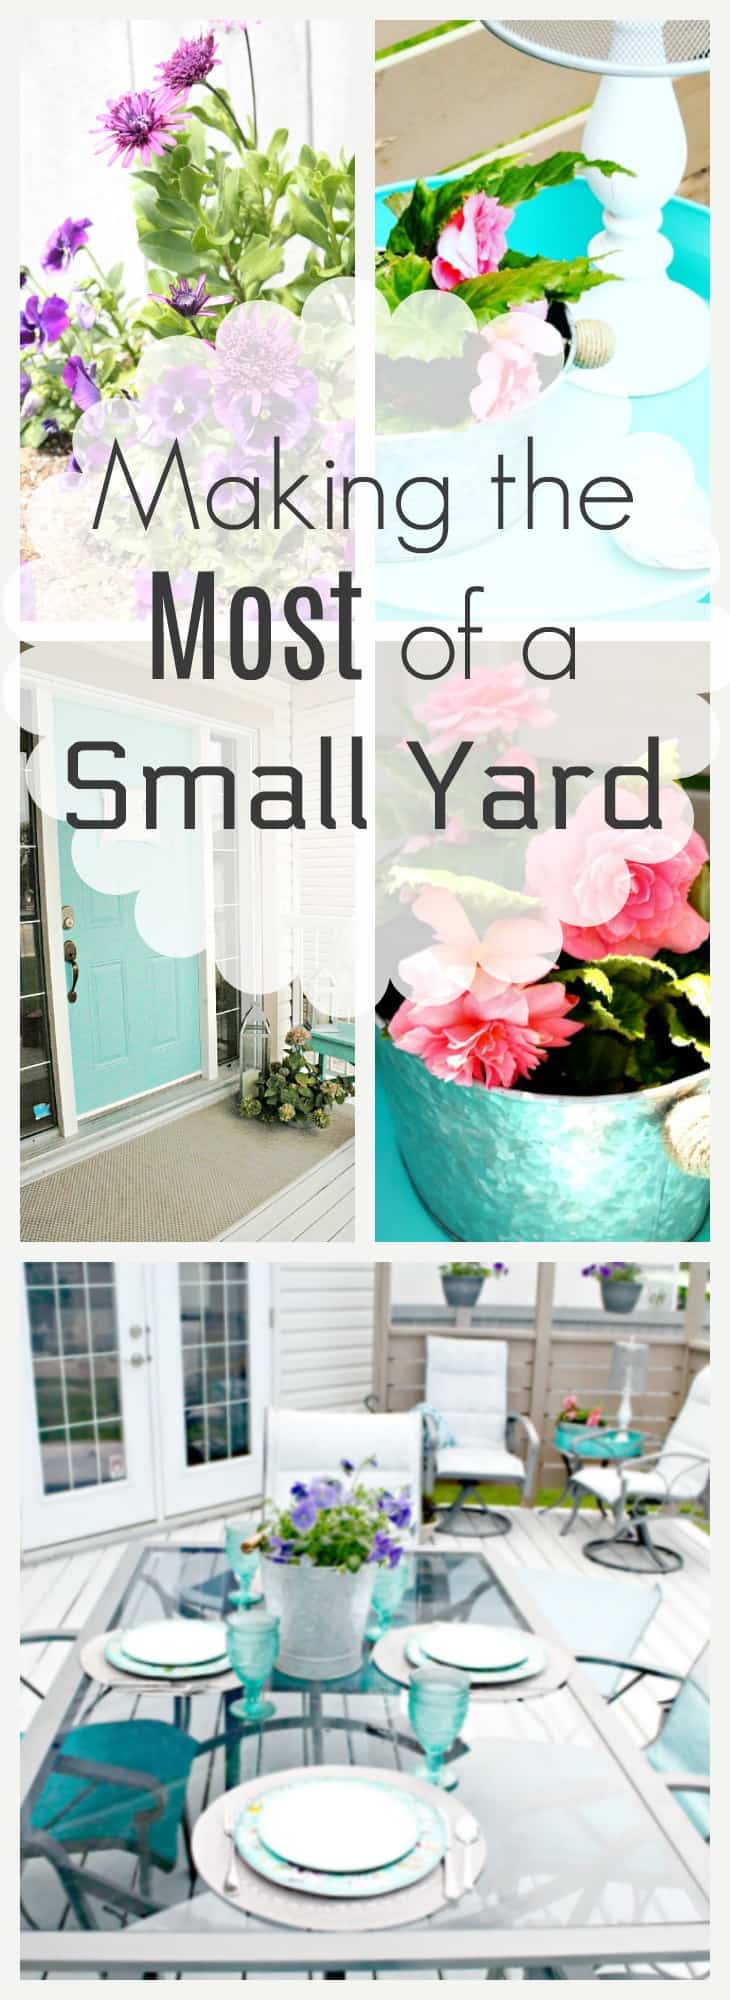 Small Yard, Make the Most of a Small Yard, Add a theme to a small yard to add impact.